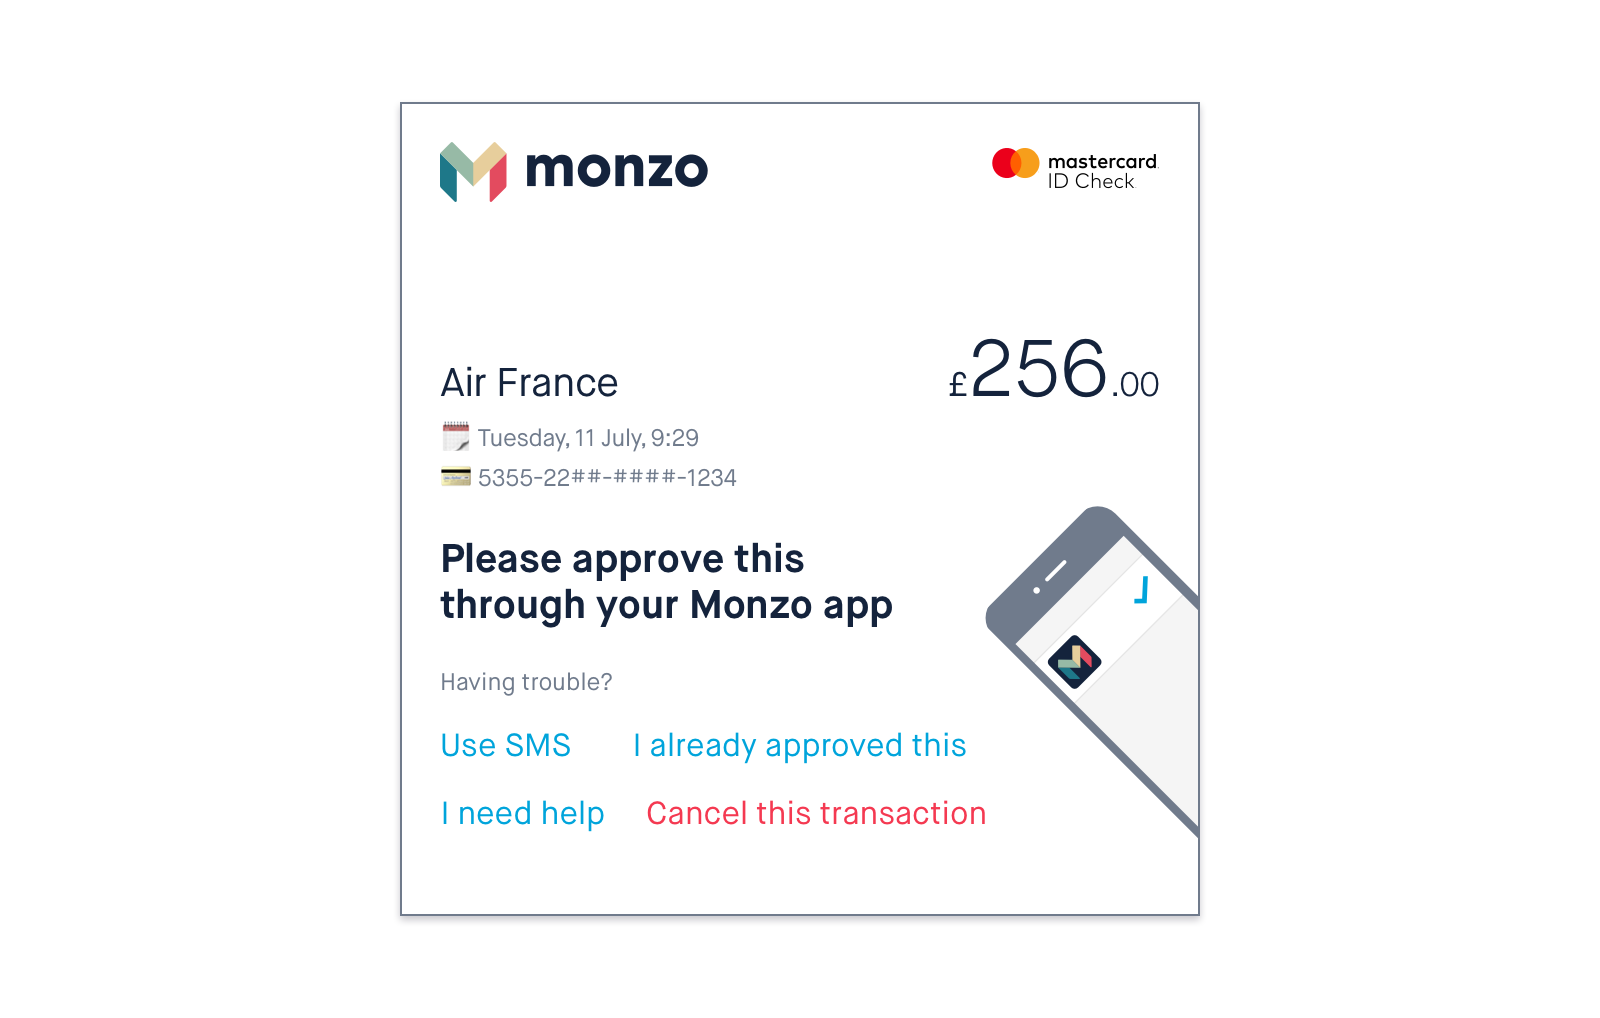 Screenshot of the Monzo 3D Secure experience